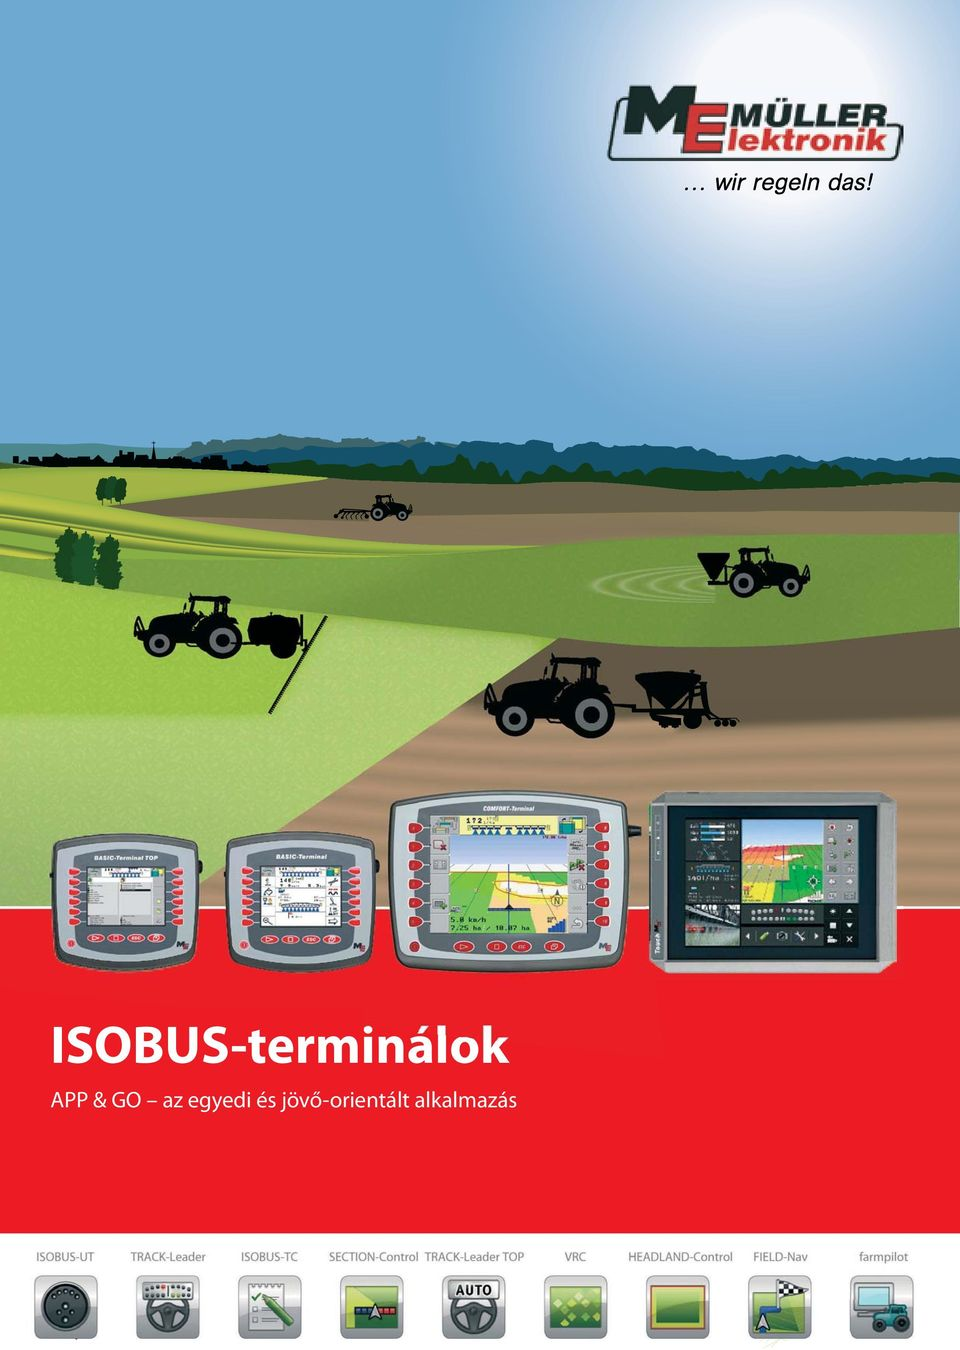 TRACK-Leader ISOBUS-TC SECTION-Control